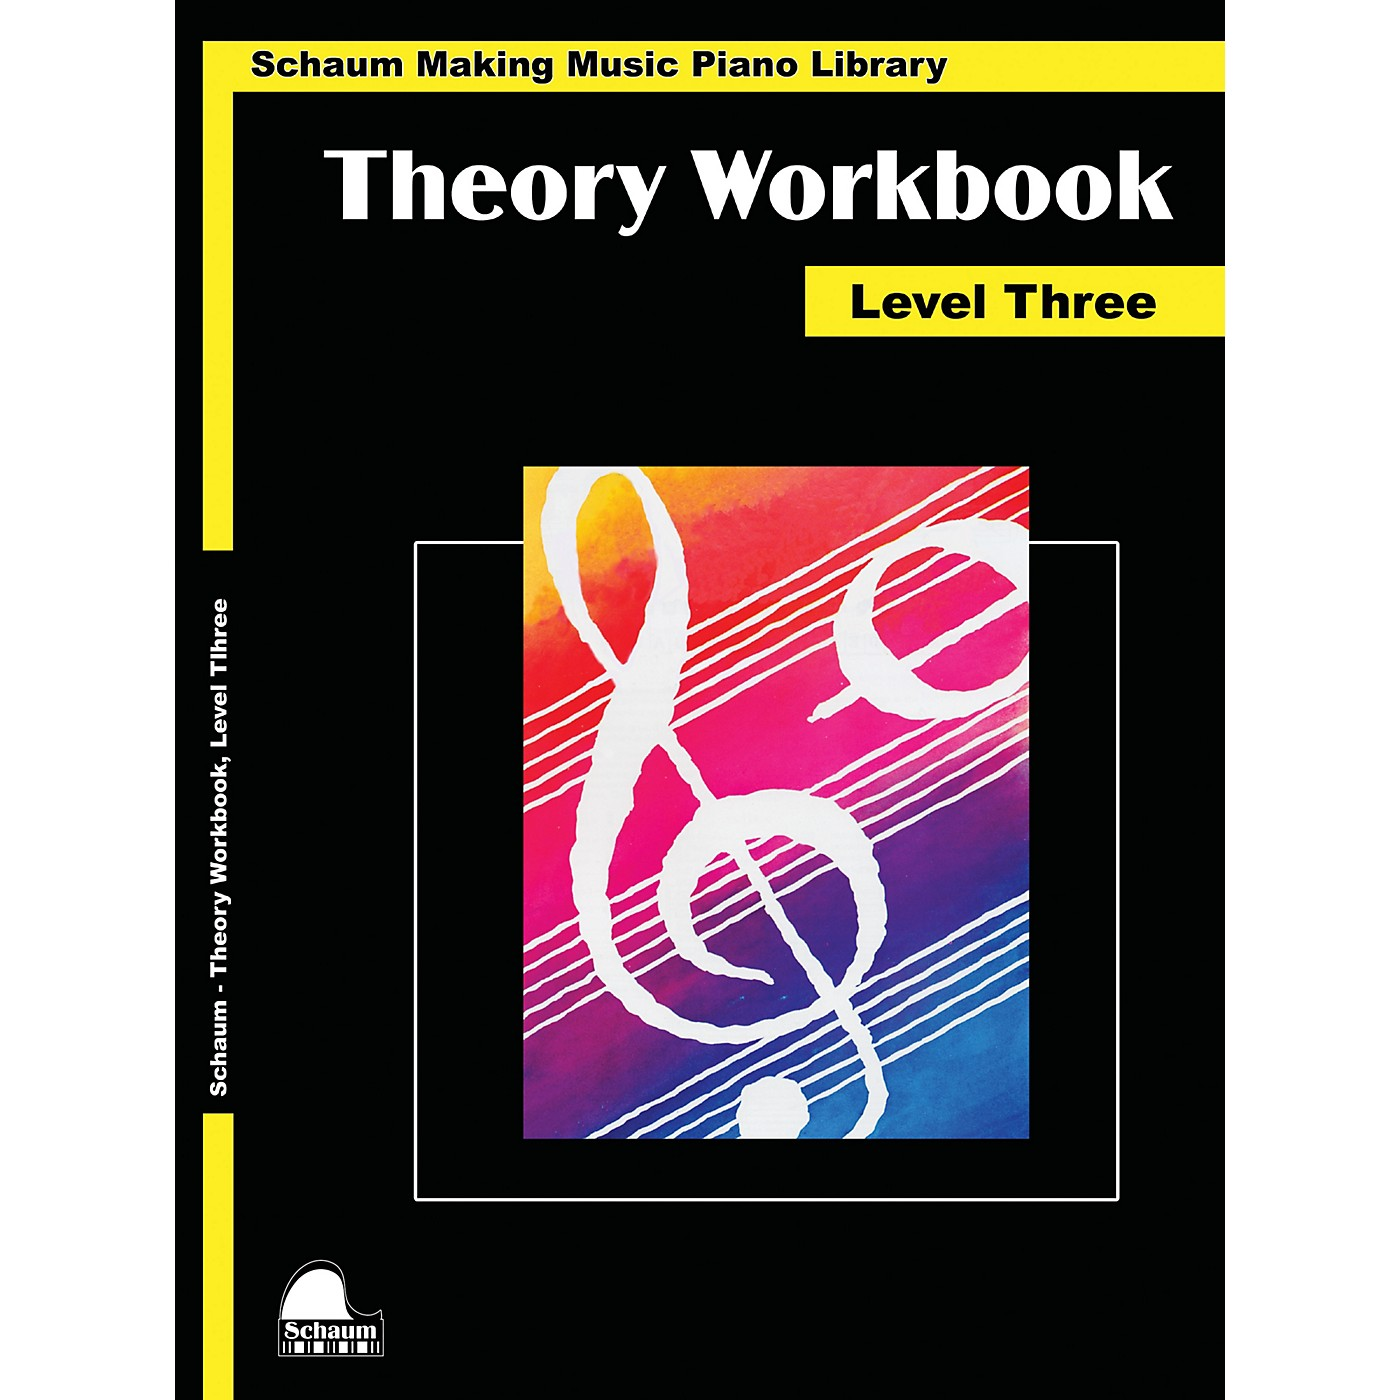 SCHAUM Theory Workbook - Level 3 Educational Piano Book by Wesley Schaum thumbnail